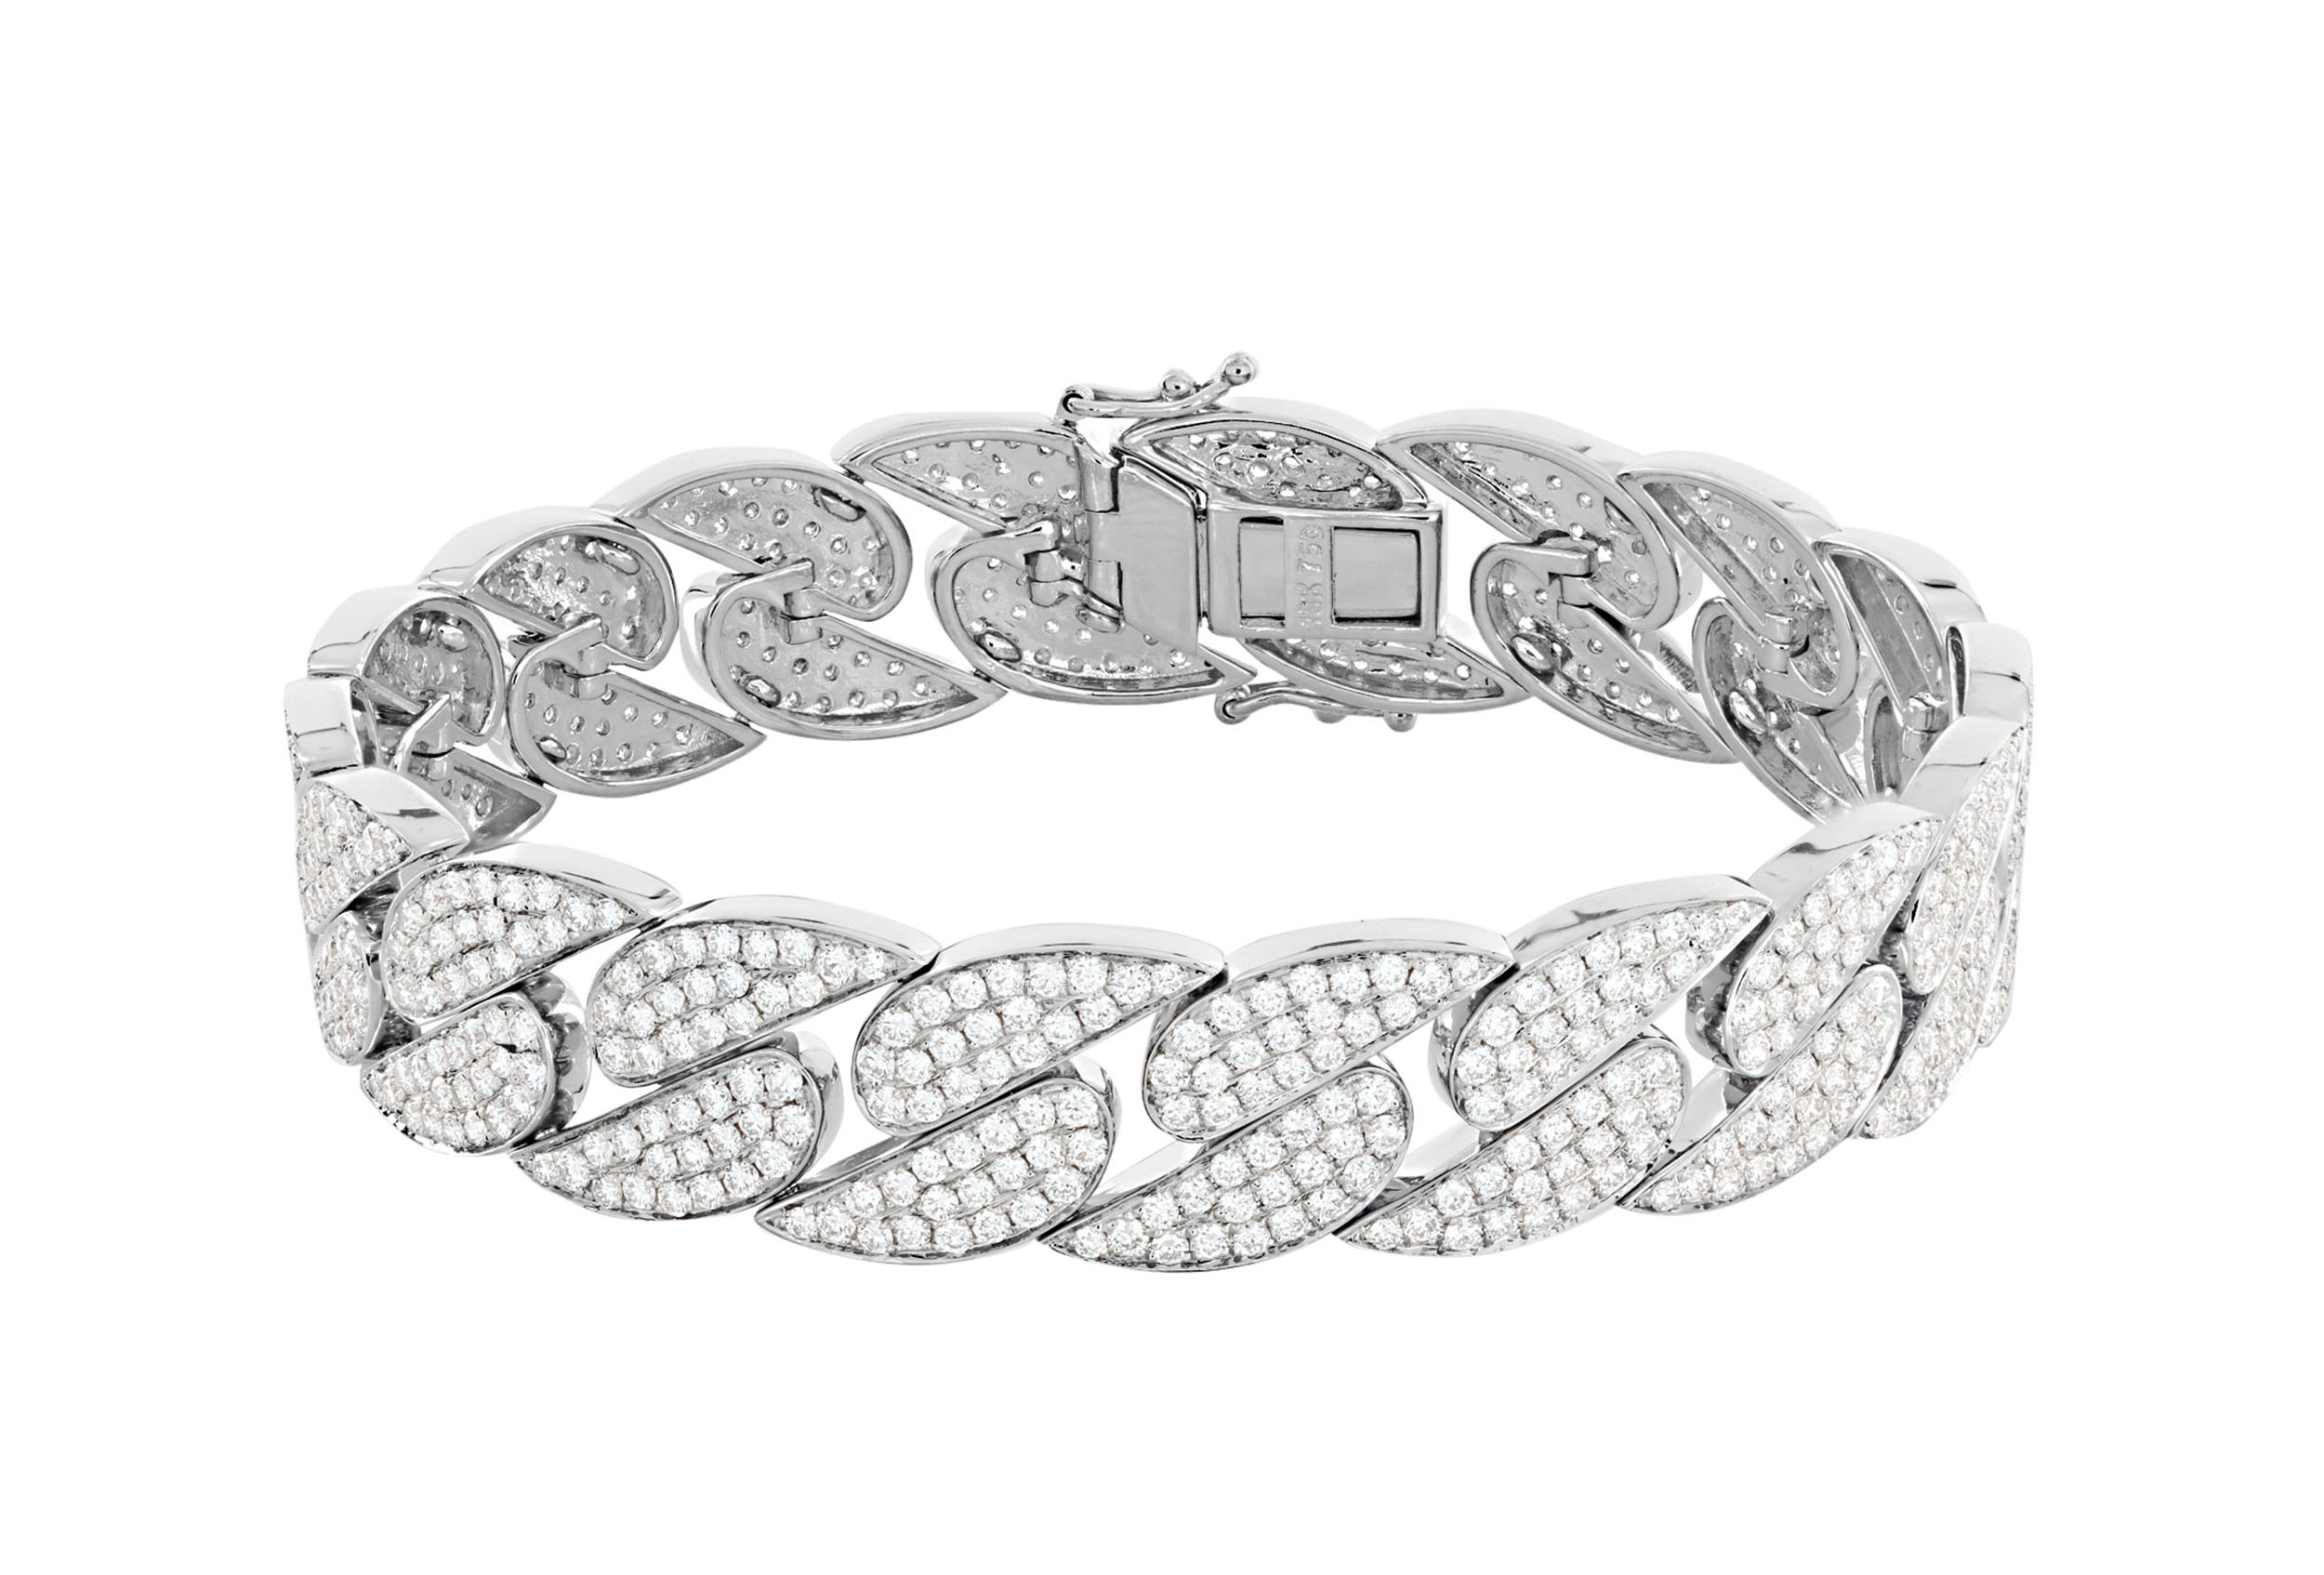 London Collection 18k White Gold and Pave Diamond Curb Link Bracelet